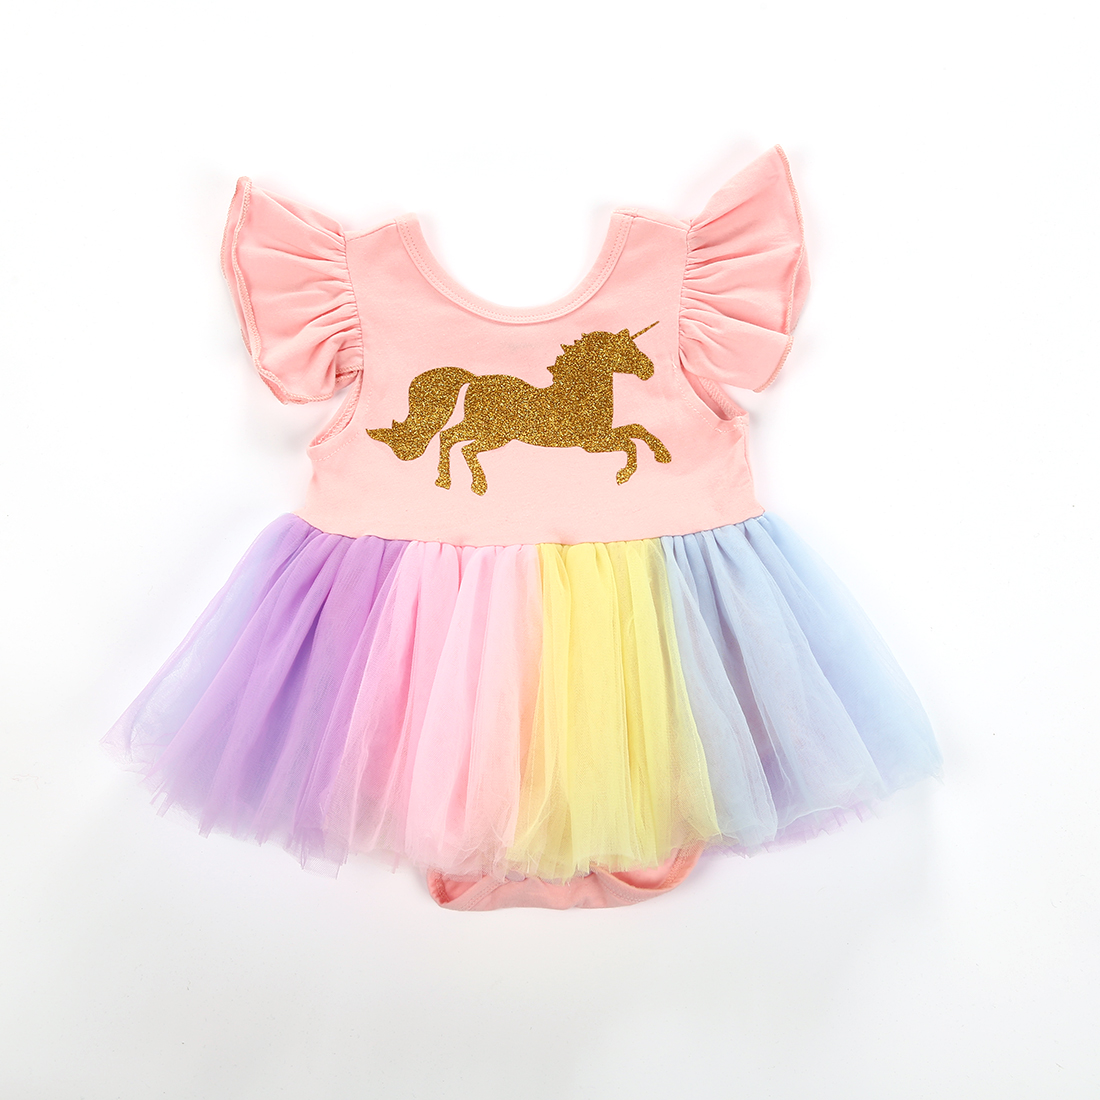 Baby Girls Halter Bodysuit Tulle Skirts,Sequins with Cute Animal Fruit Romper Tutu Dress Sunsuit Outfits